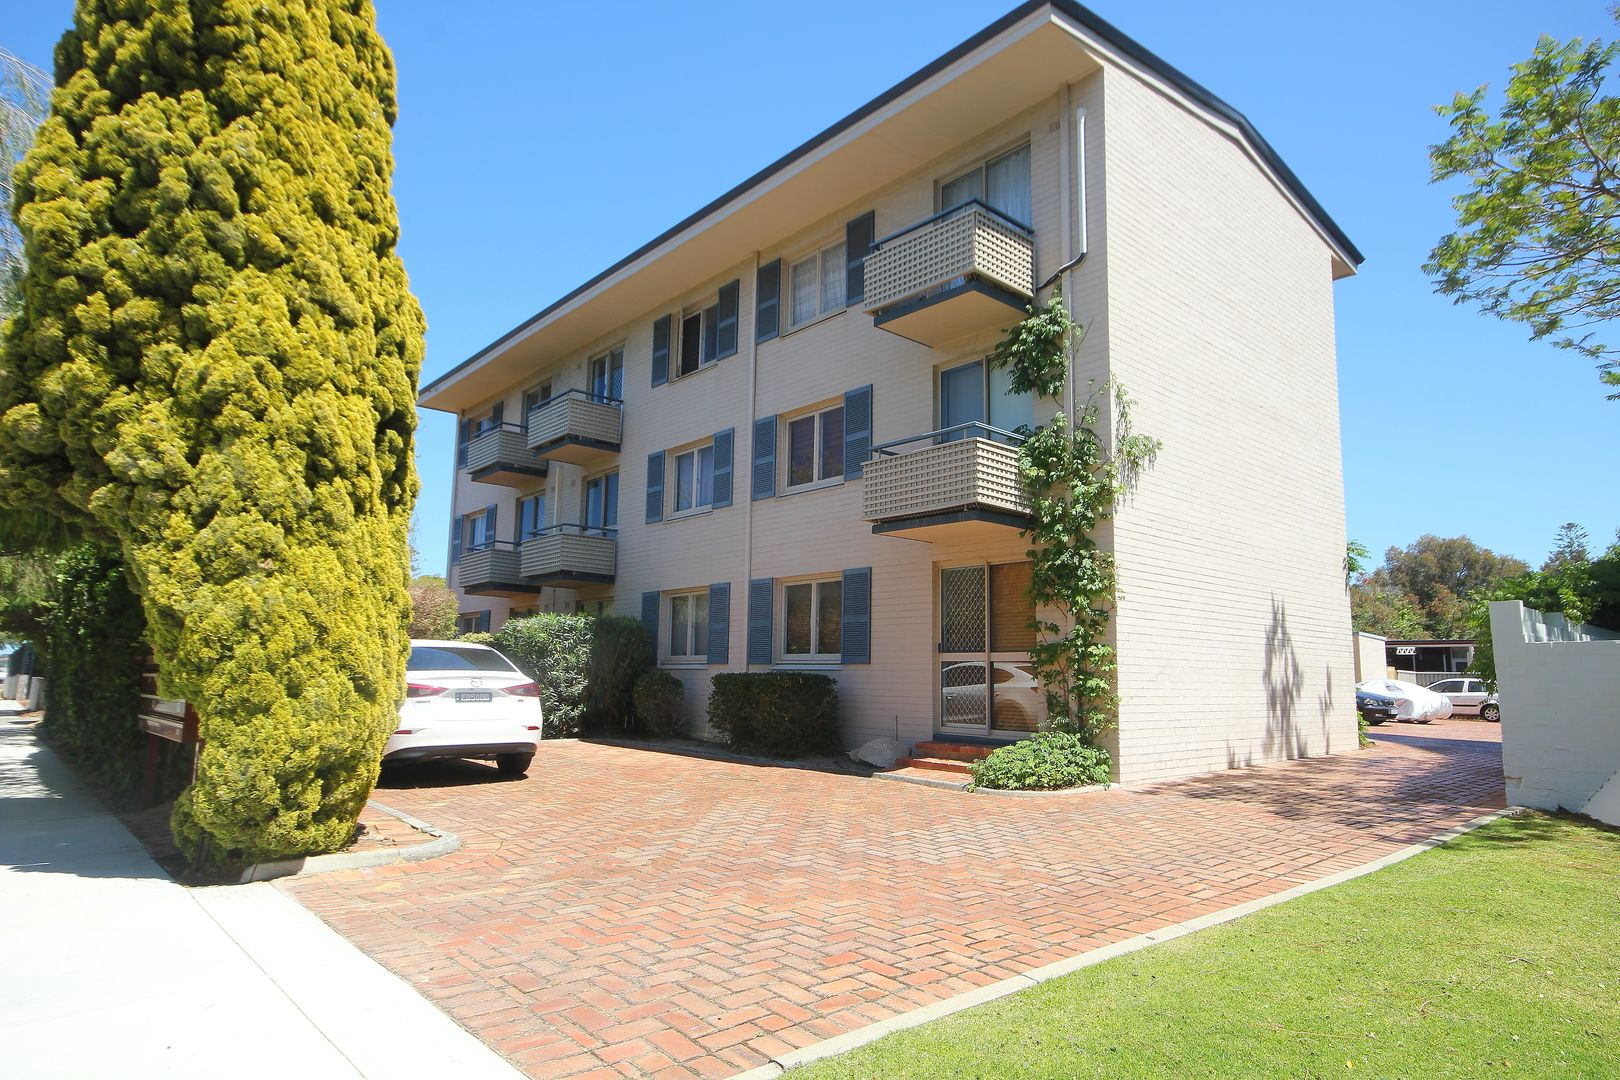 11/3 Bowman St, South Perth WA 6151 - Apartment For Sale ...